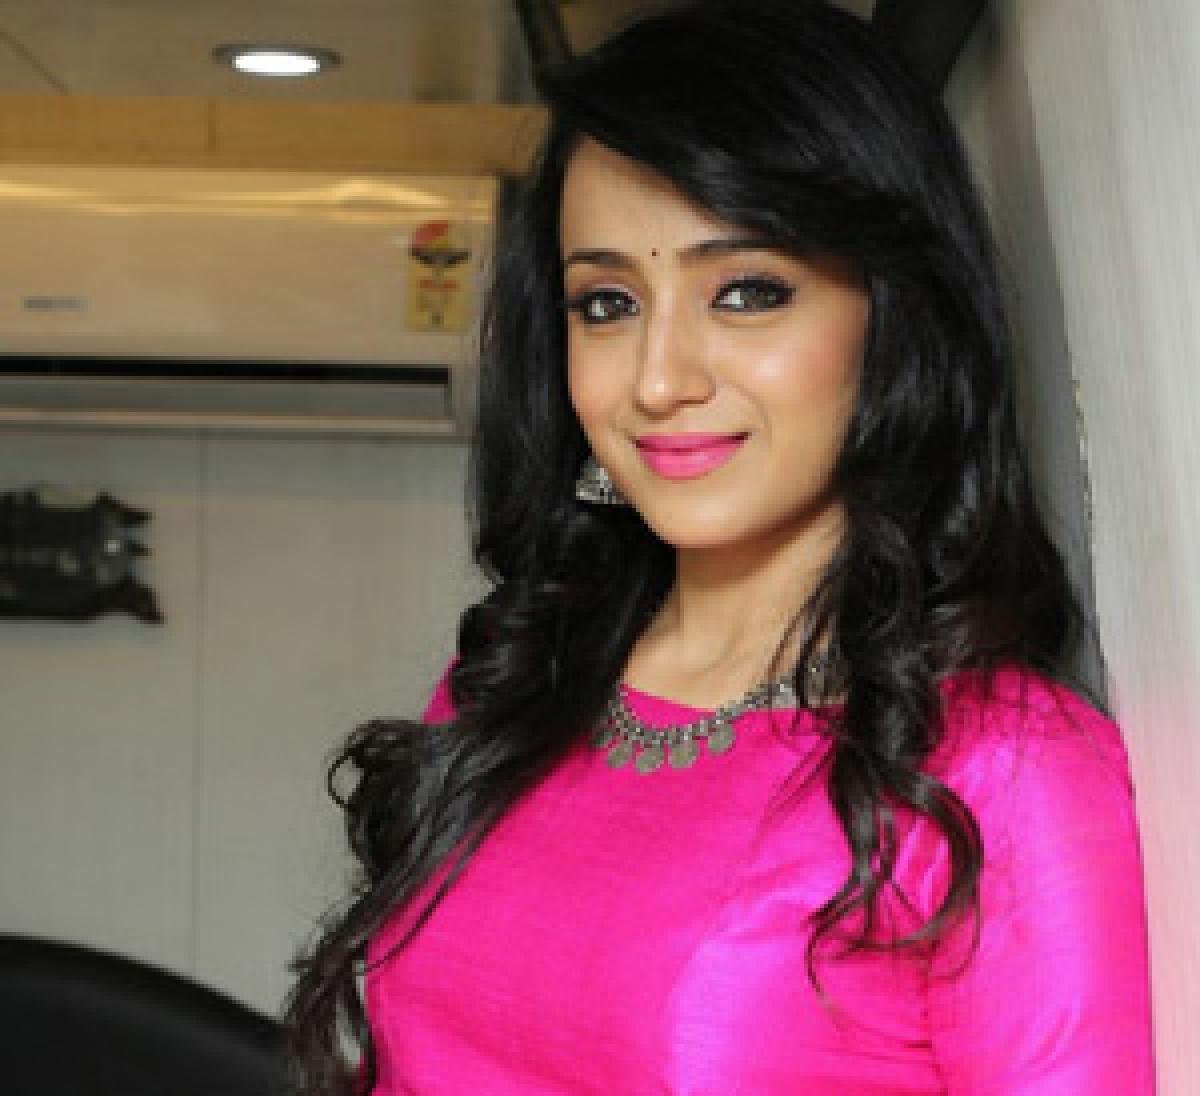 Trisha flaunts her new tattoo